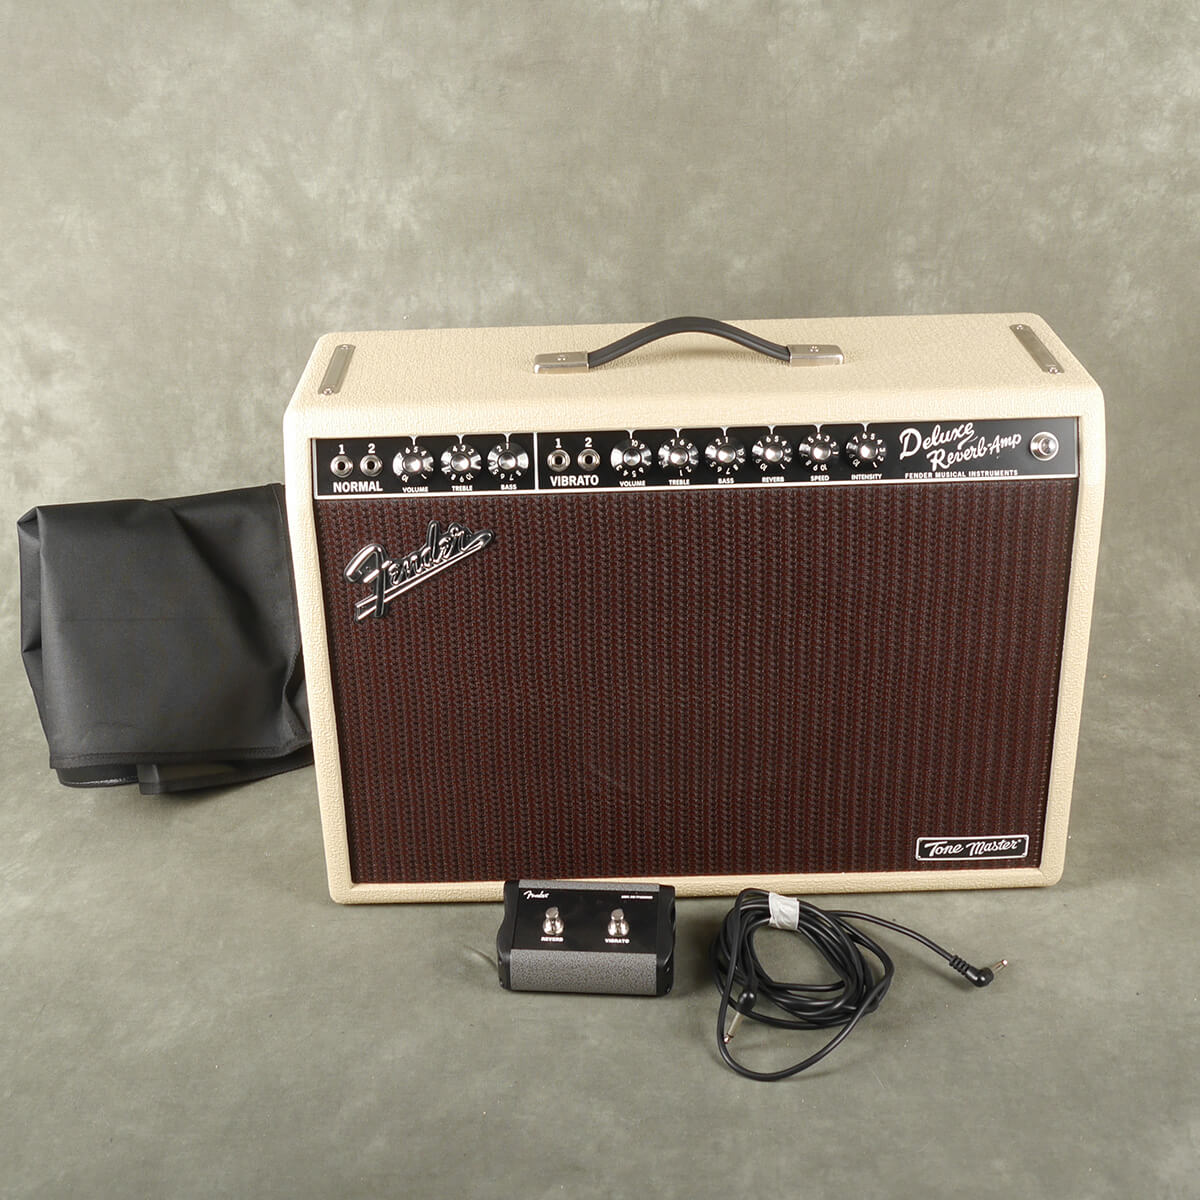 Fender Tone Master Deluxe Reverb - Blonde w/Cover - 2nd Hand